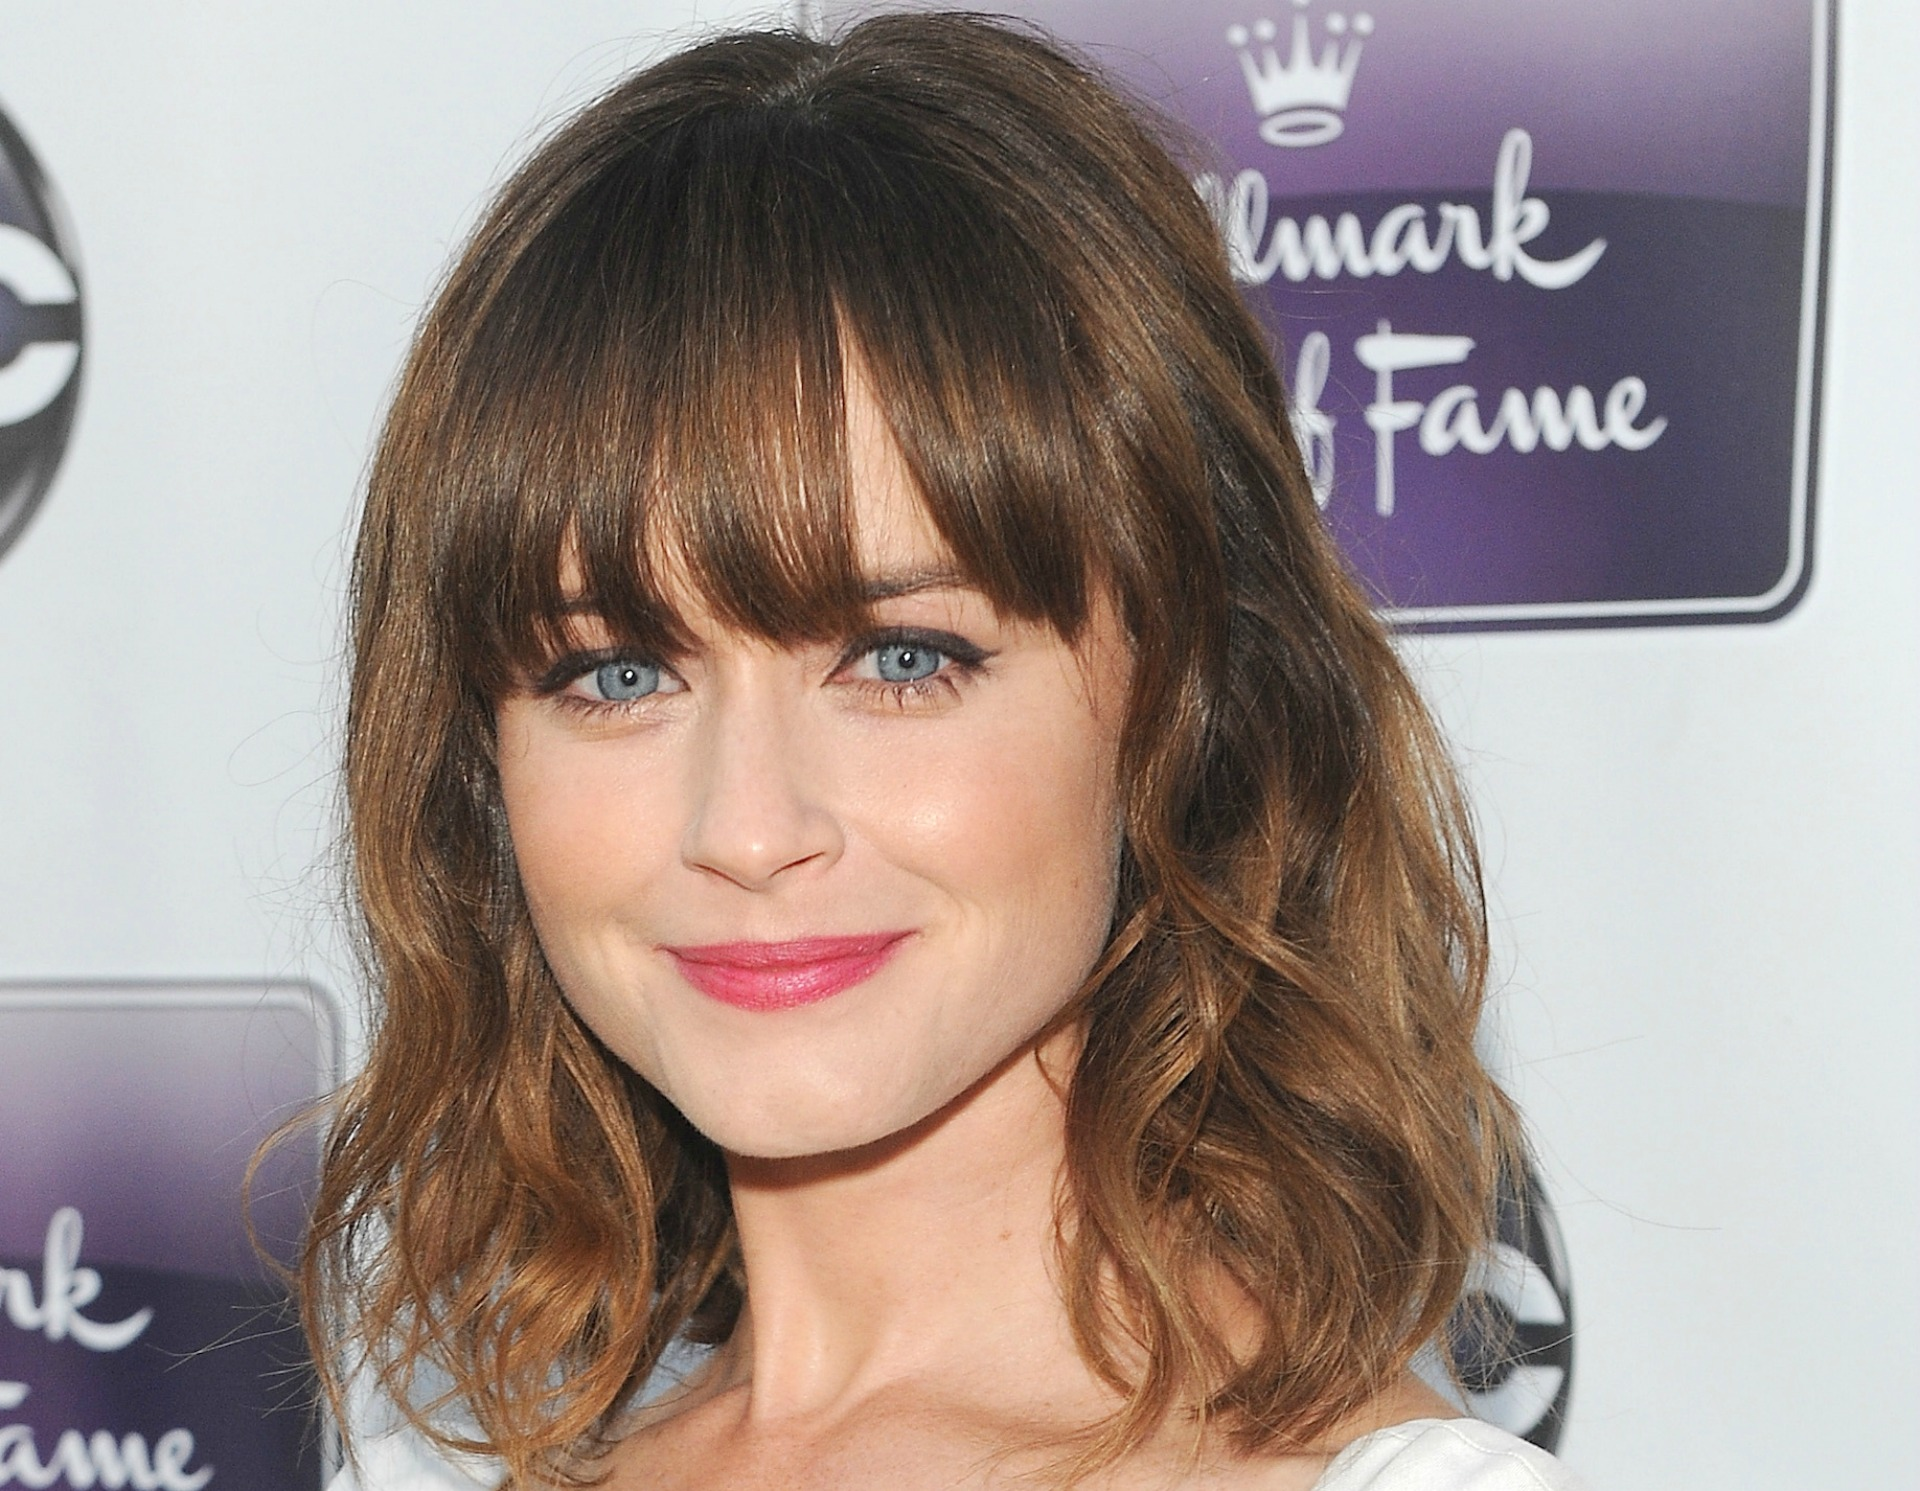 Alexis Bledel blue eyes makeup